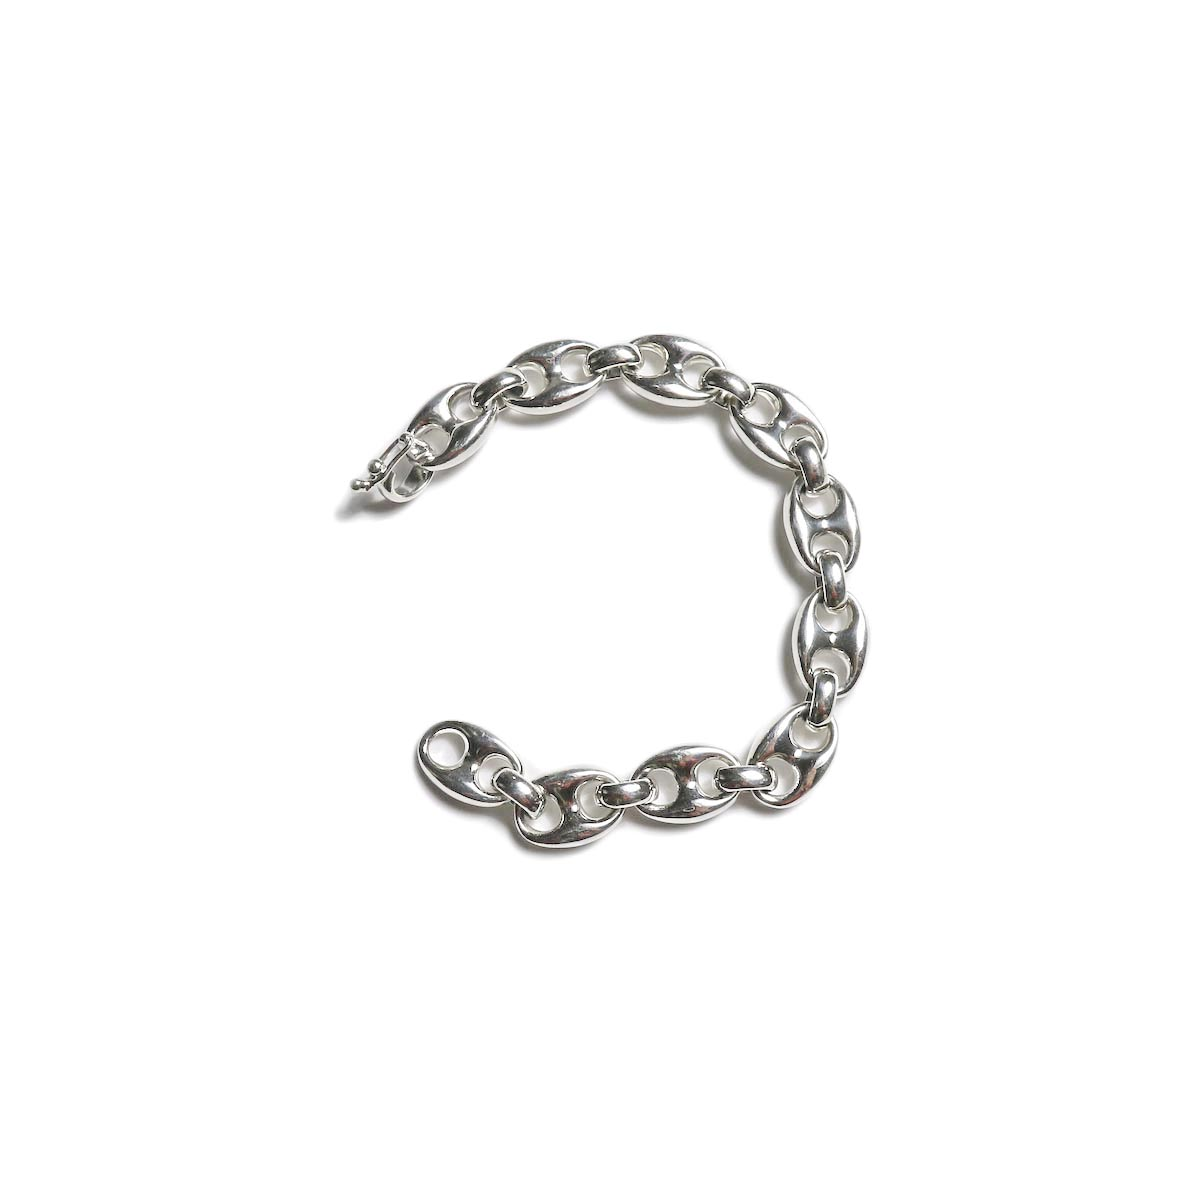 FIFTH SILVER / Special-003 SIlver Chain Bracelet (11mm)